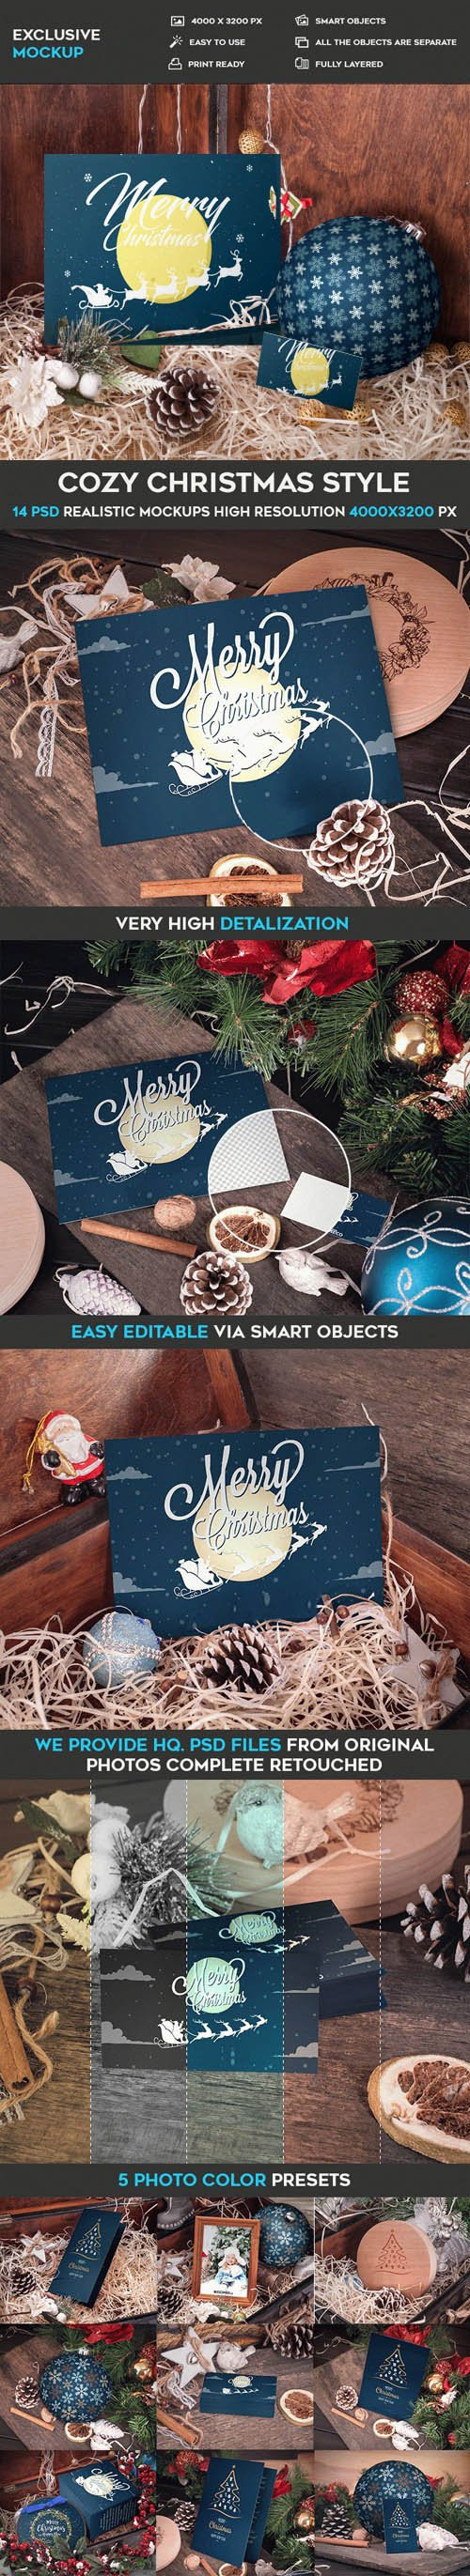 Cozy Christmas Styles - 14 PSD Mockups